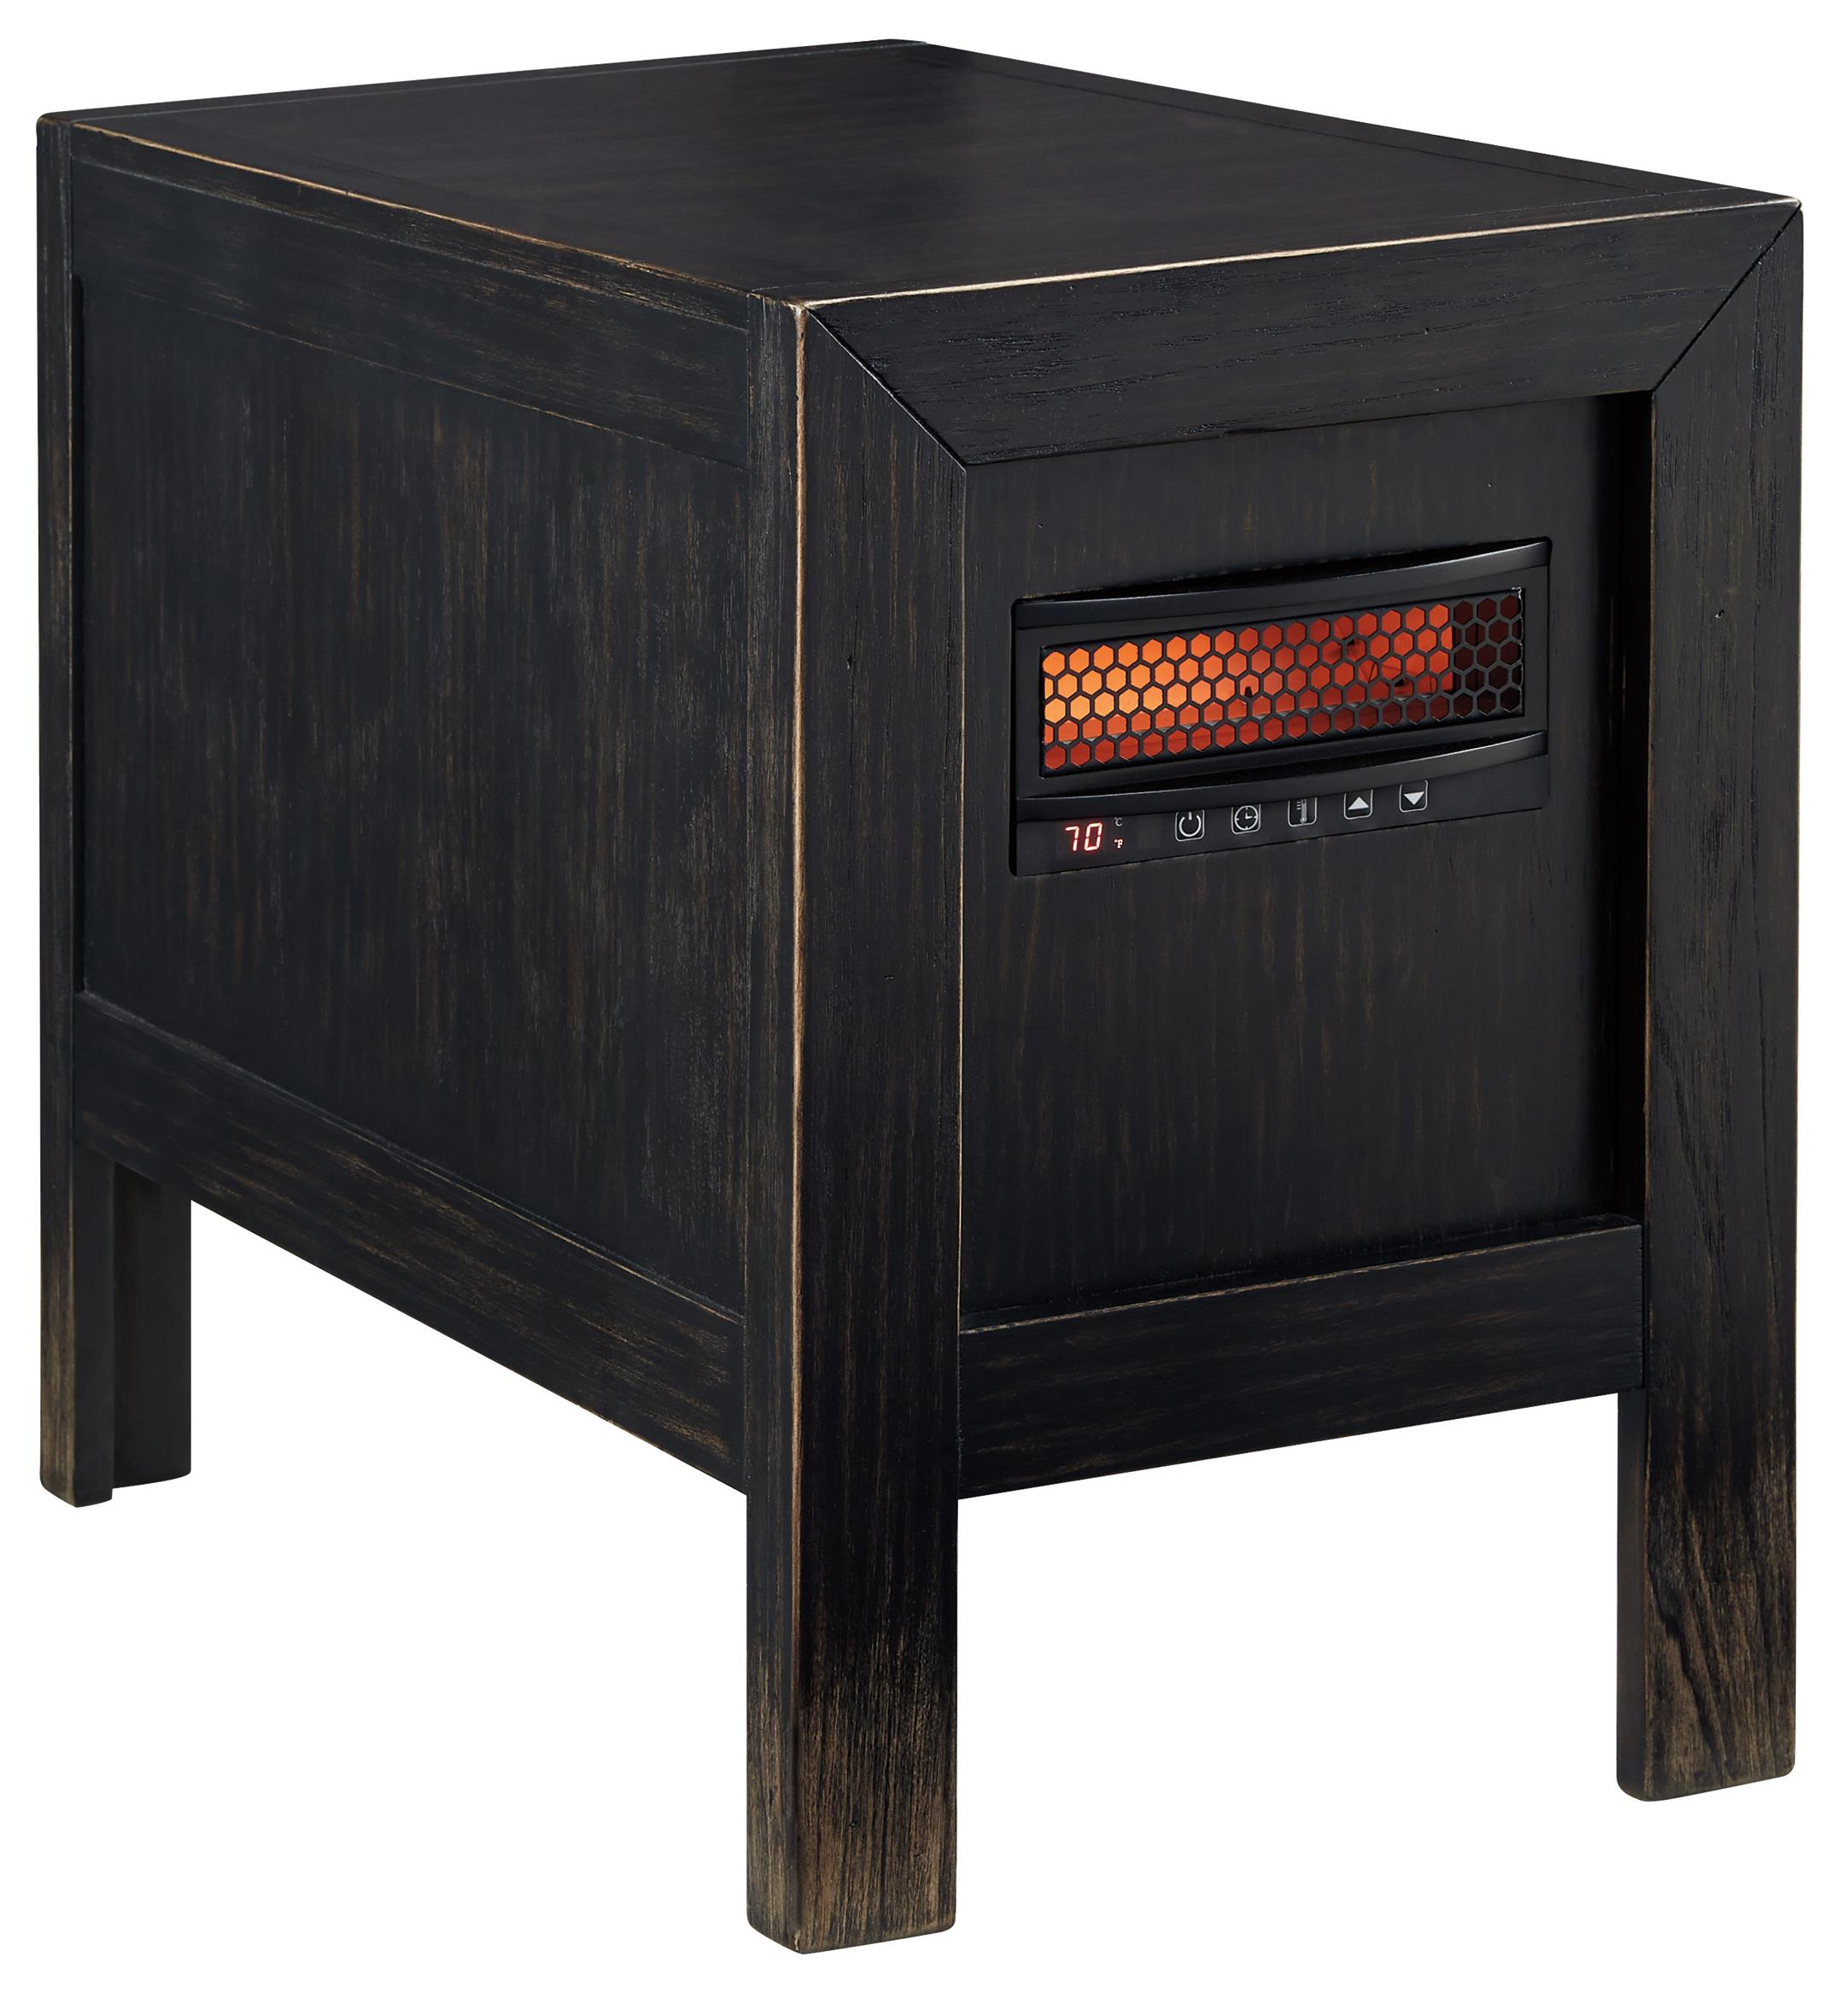 Signature Design by Ashley Gavelston Chair Side End Table w/ Heater - Item Number: T752-17